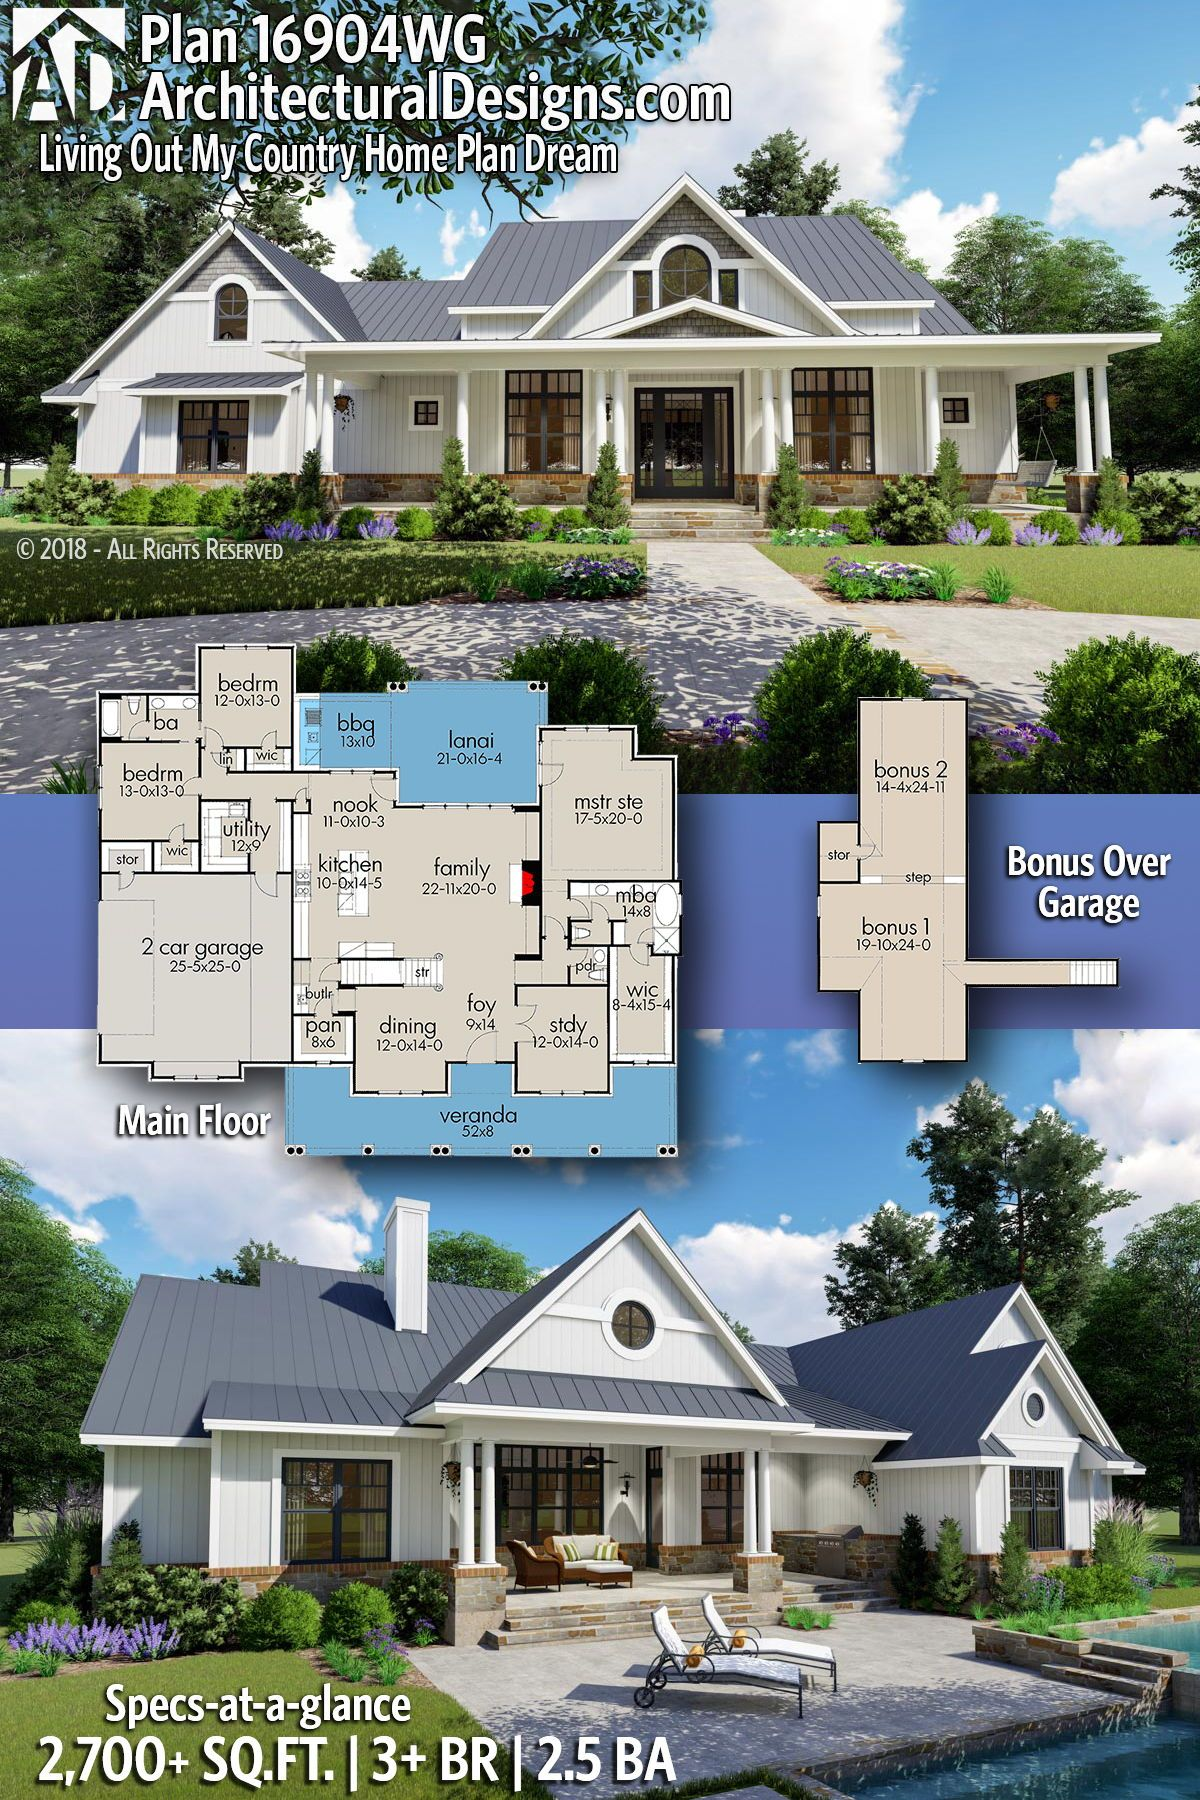 Plan 16904WG Living Out My Country Home